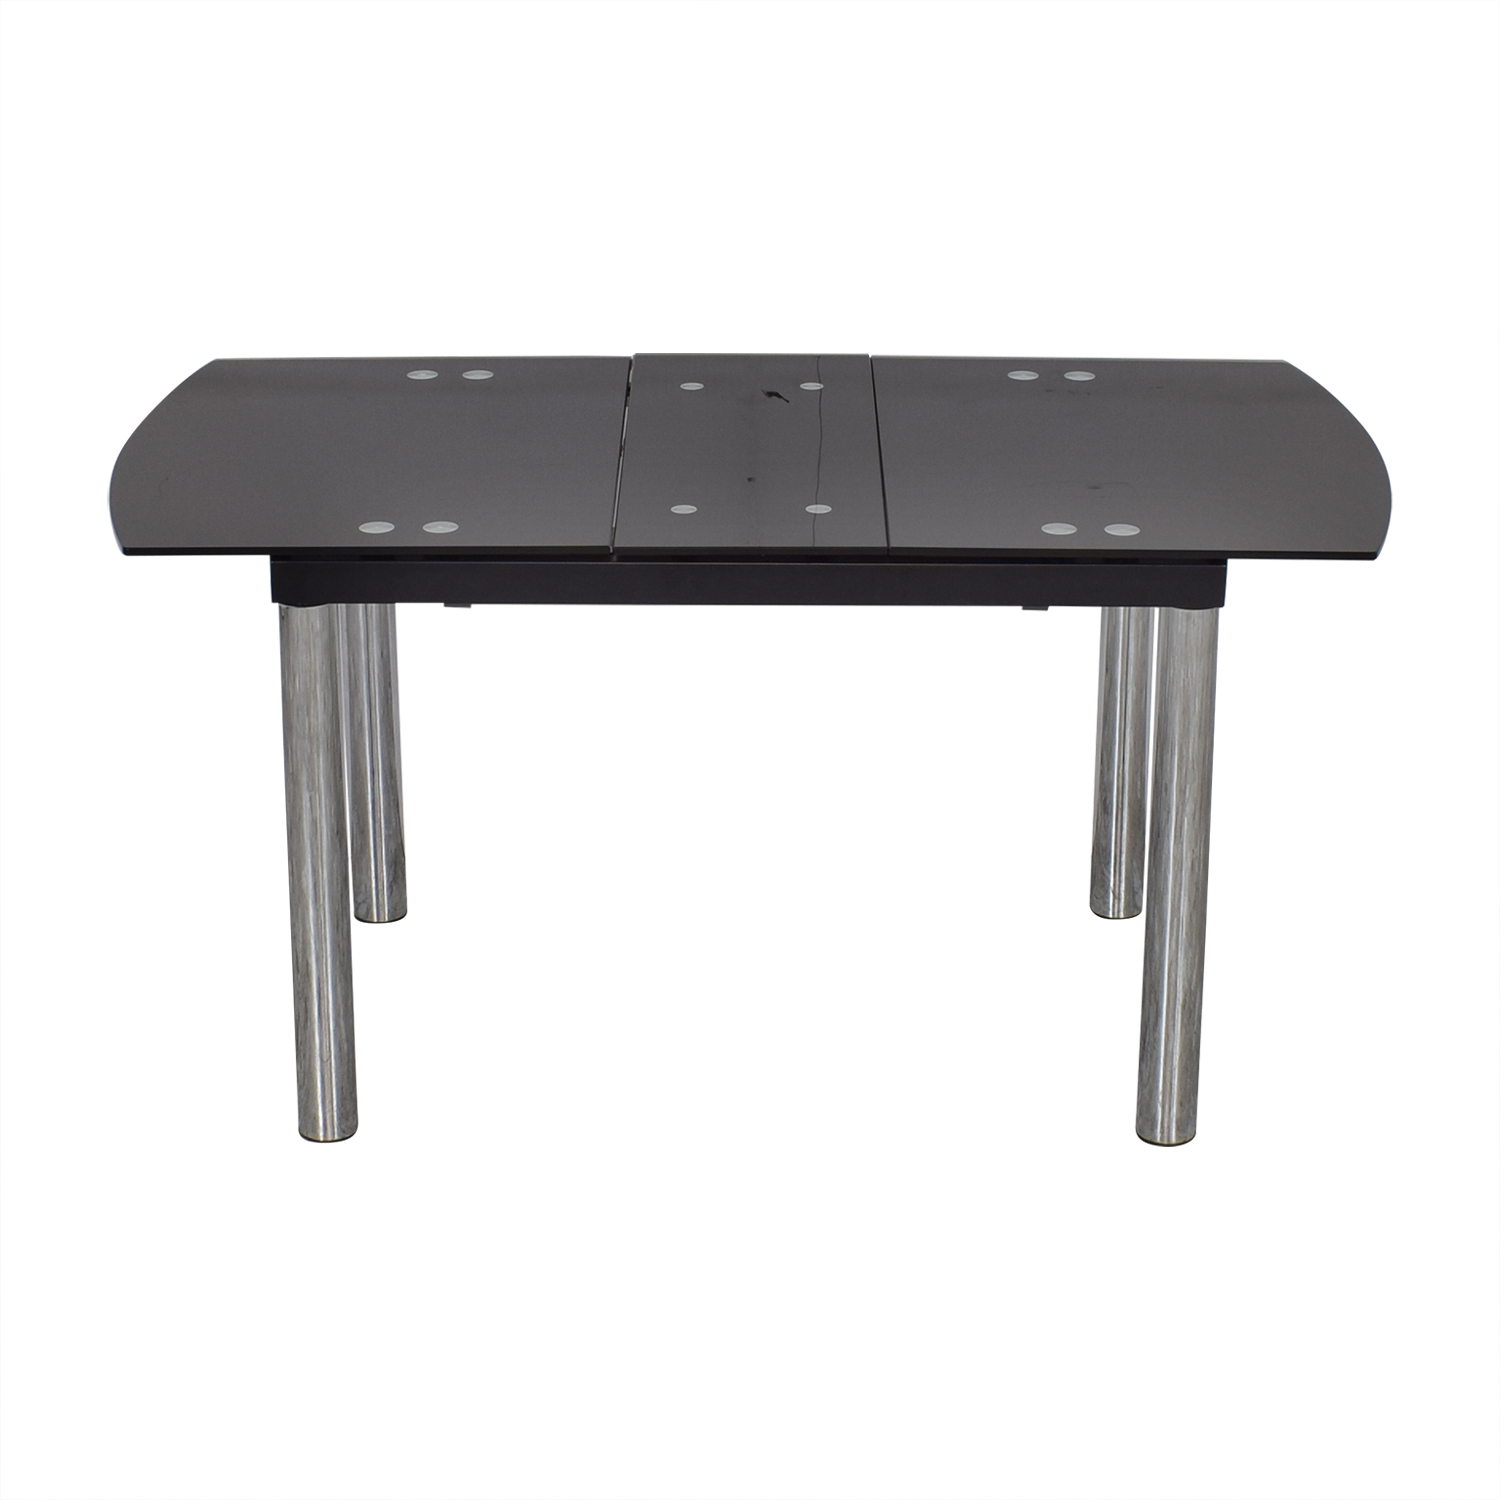 Structube Structube Extendable Dining Table dimensions